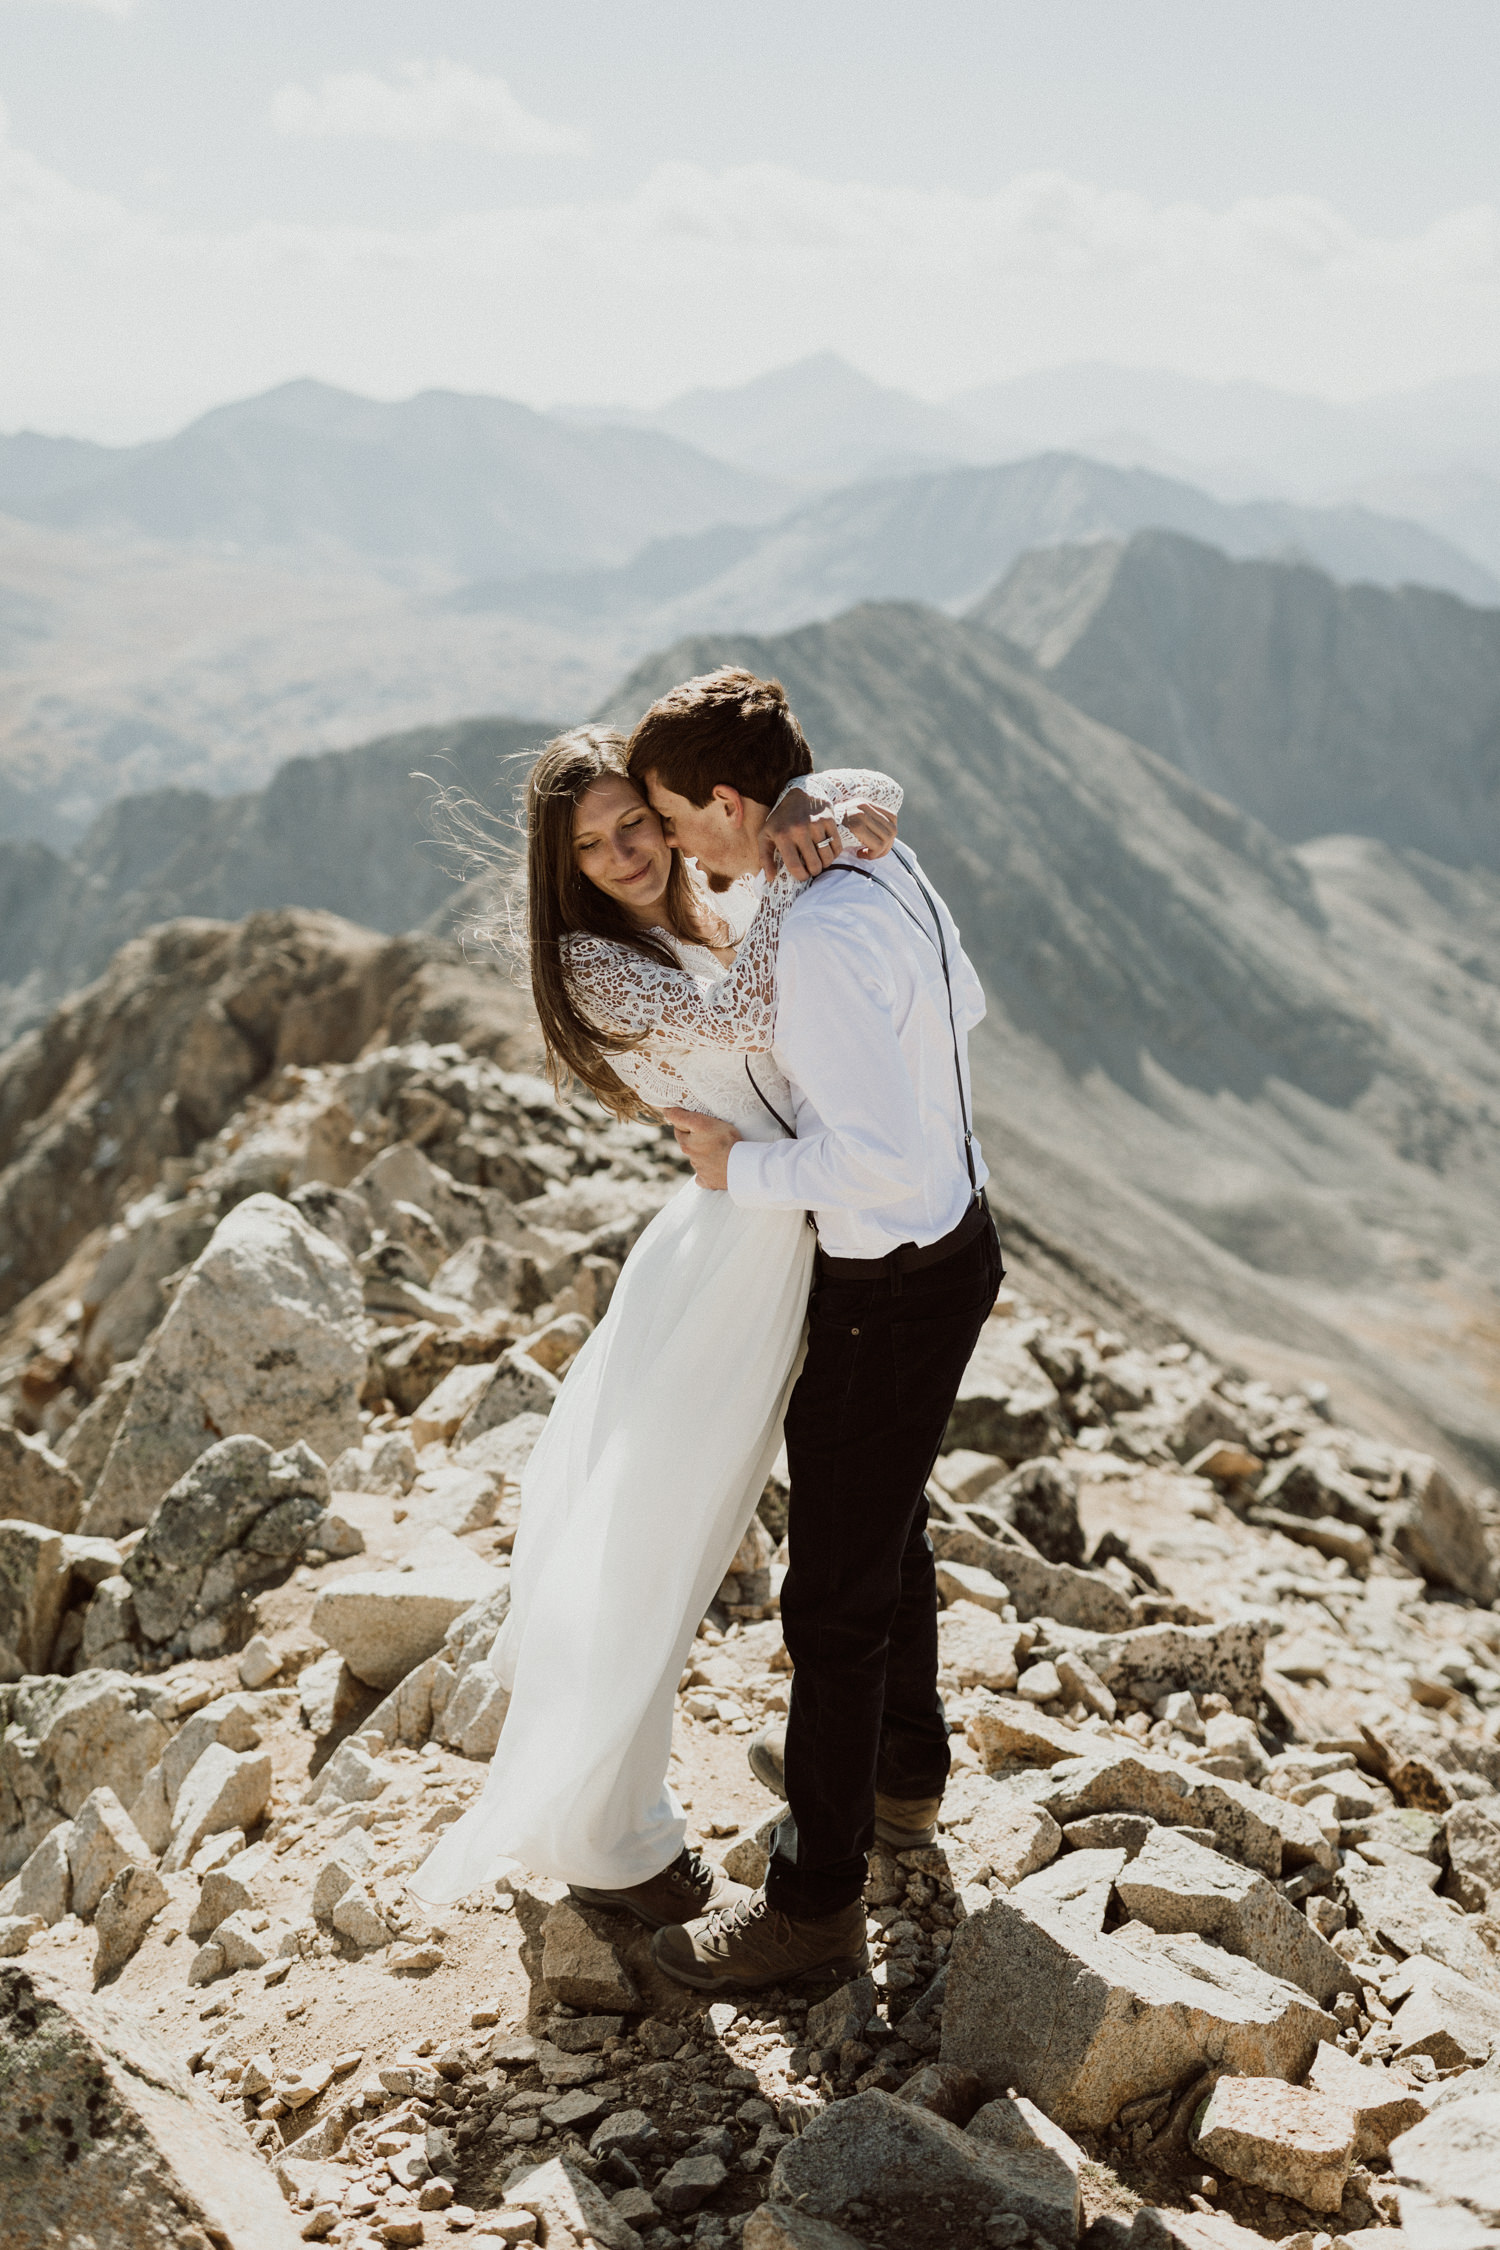 fourteener-adventure-wedding-photographer-93.jpg